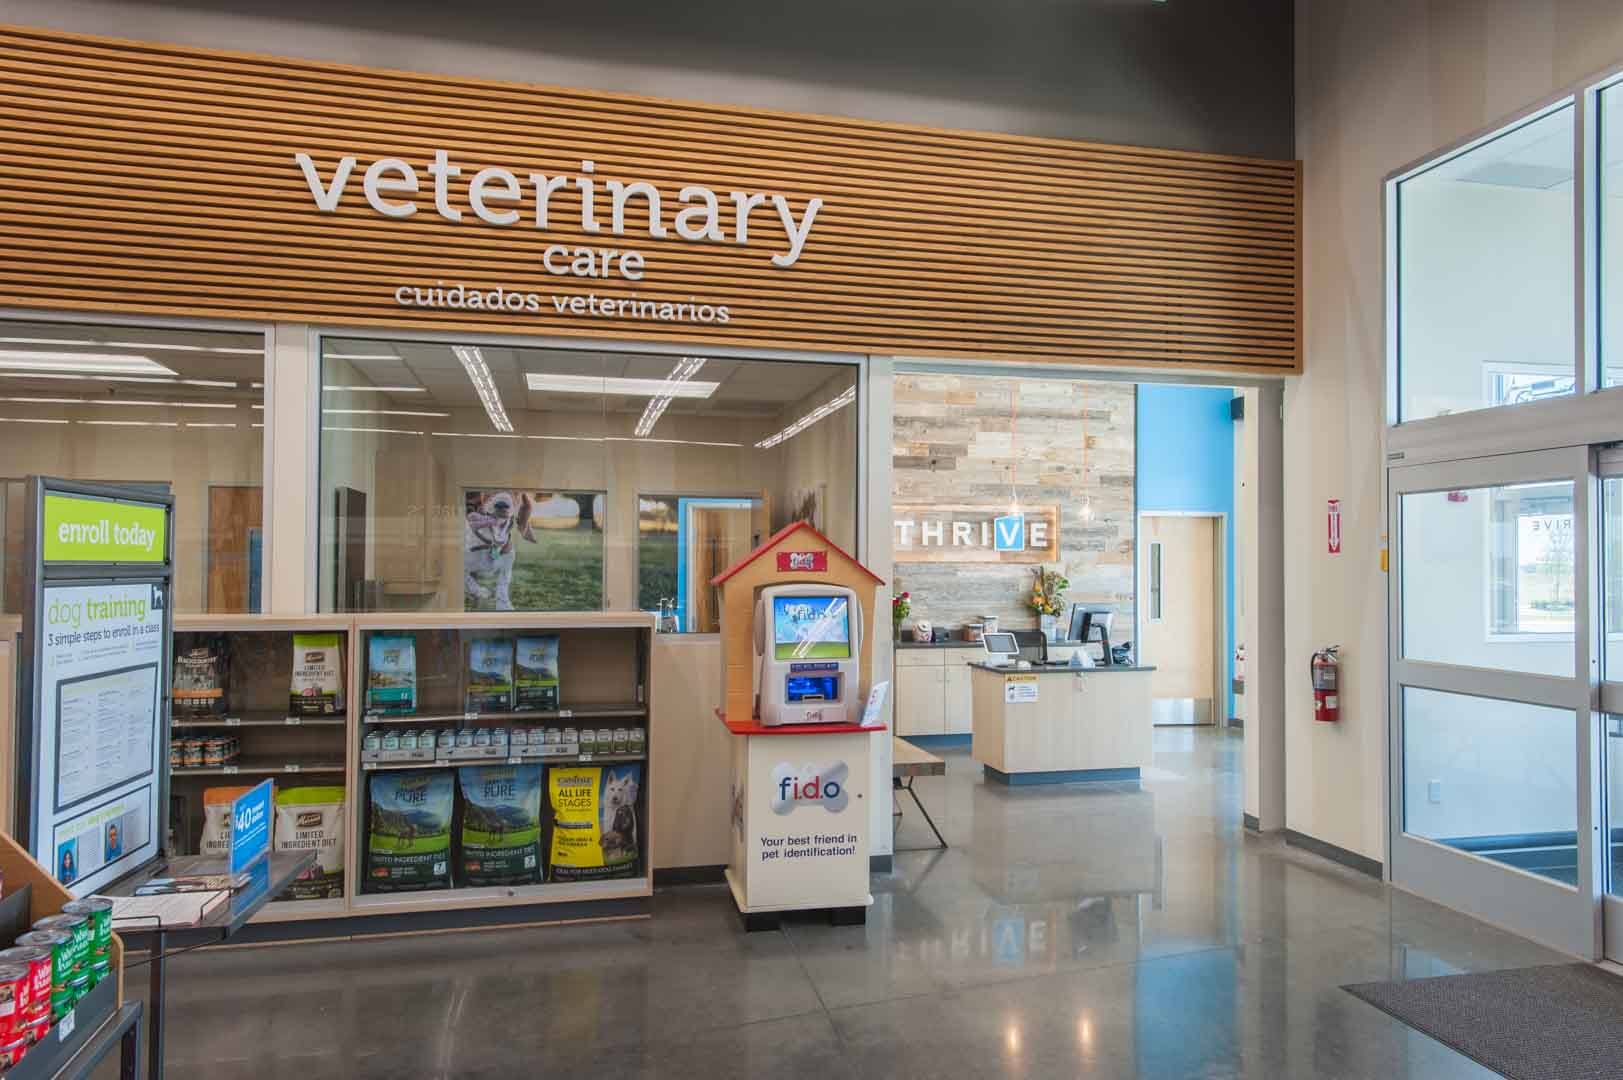 Thrive Veterinary Office - Kissimmee FL - Mike Martin-19.jpg